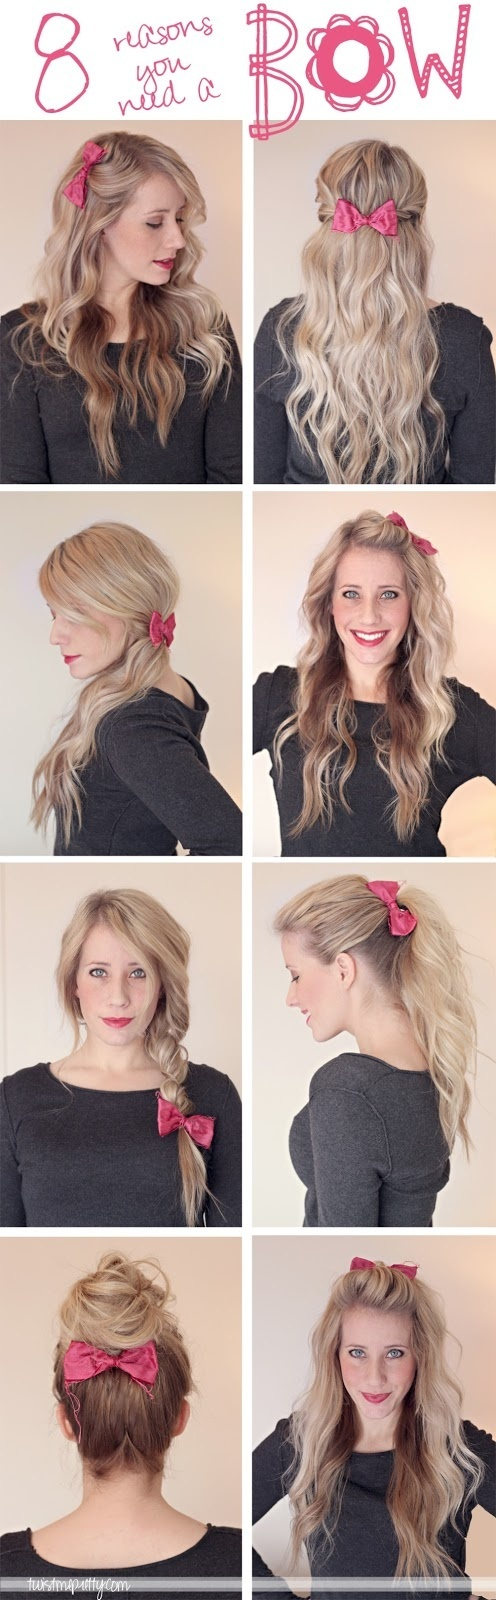 8 Ways to Use a Bow